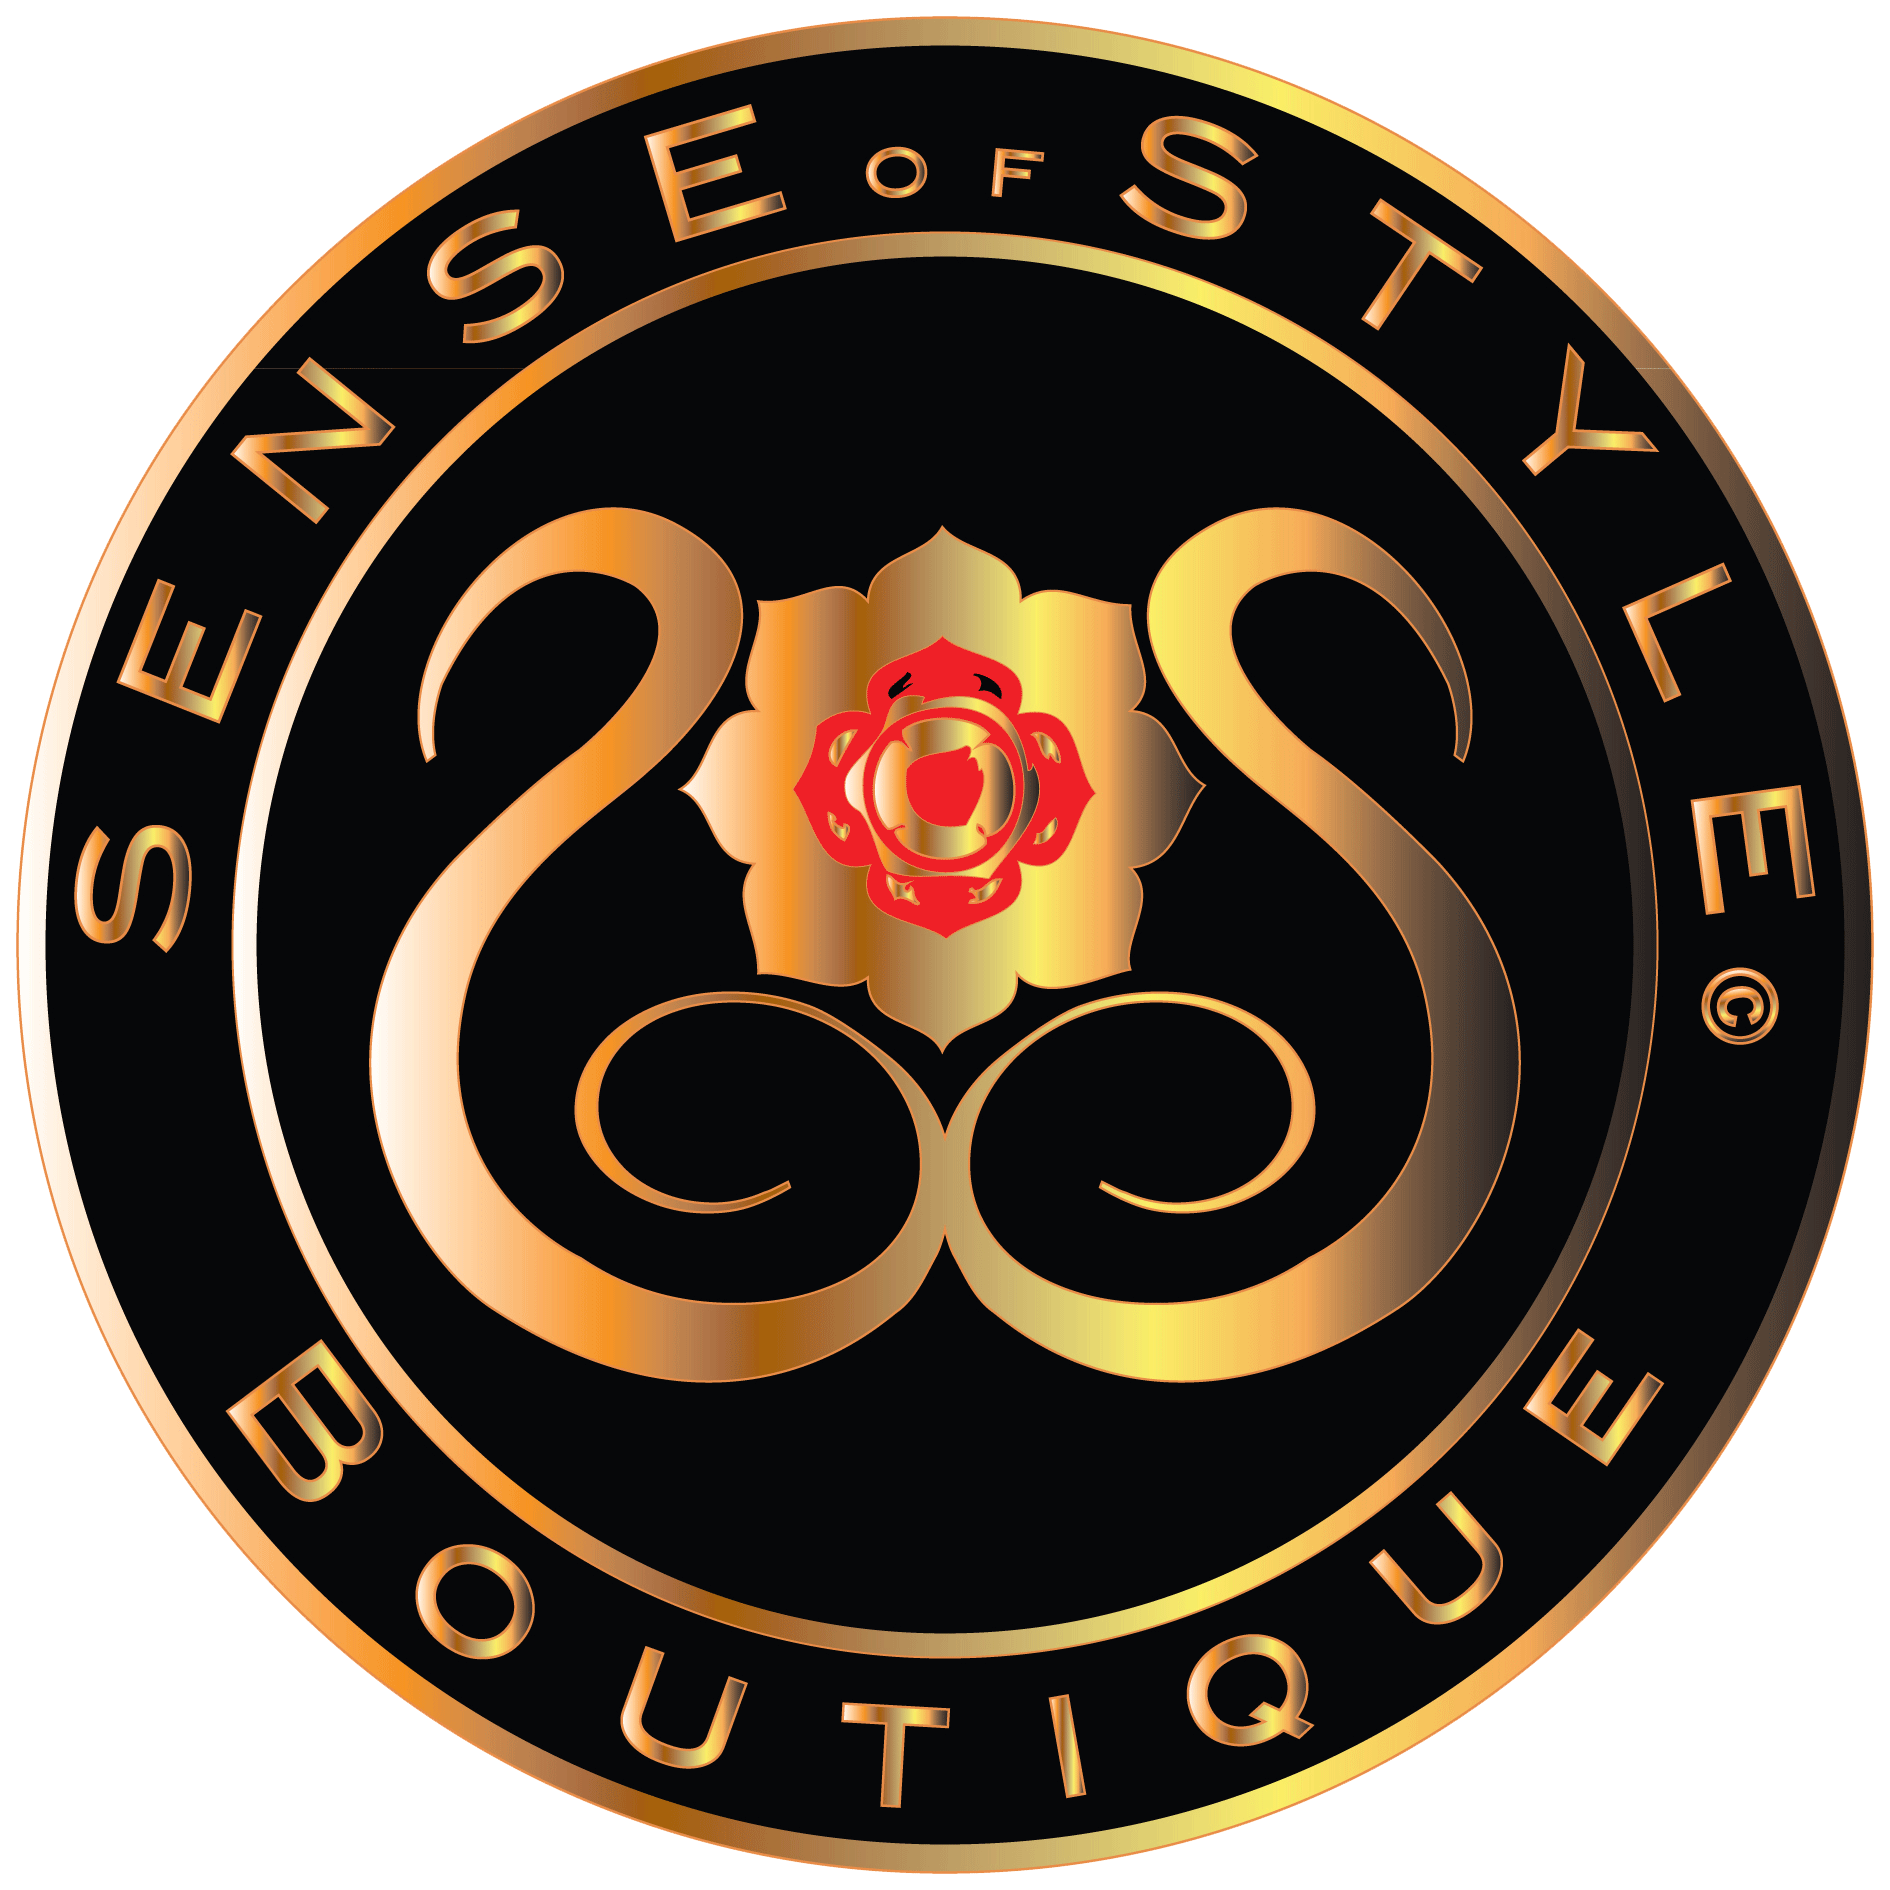 Sense of Style Boutique LLC